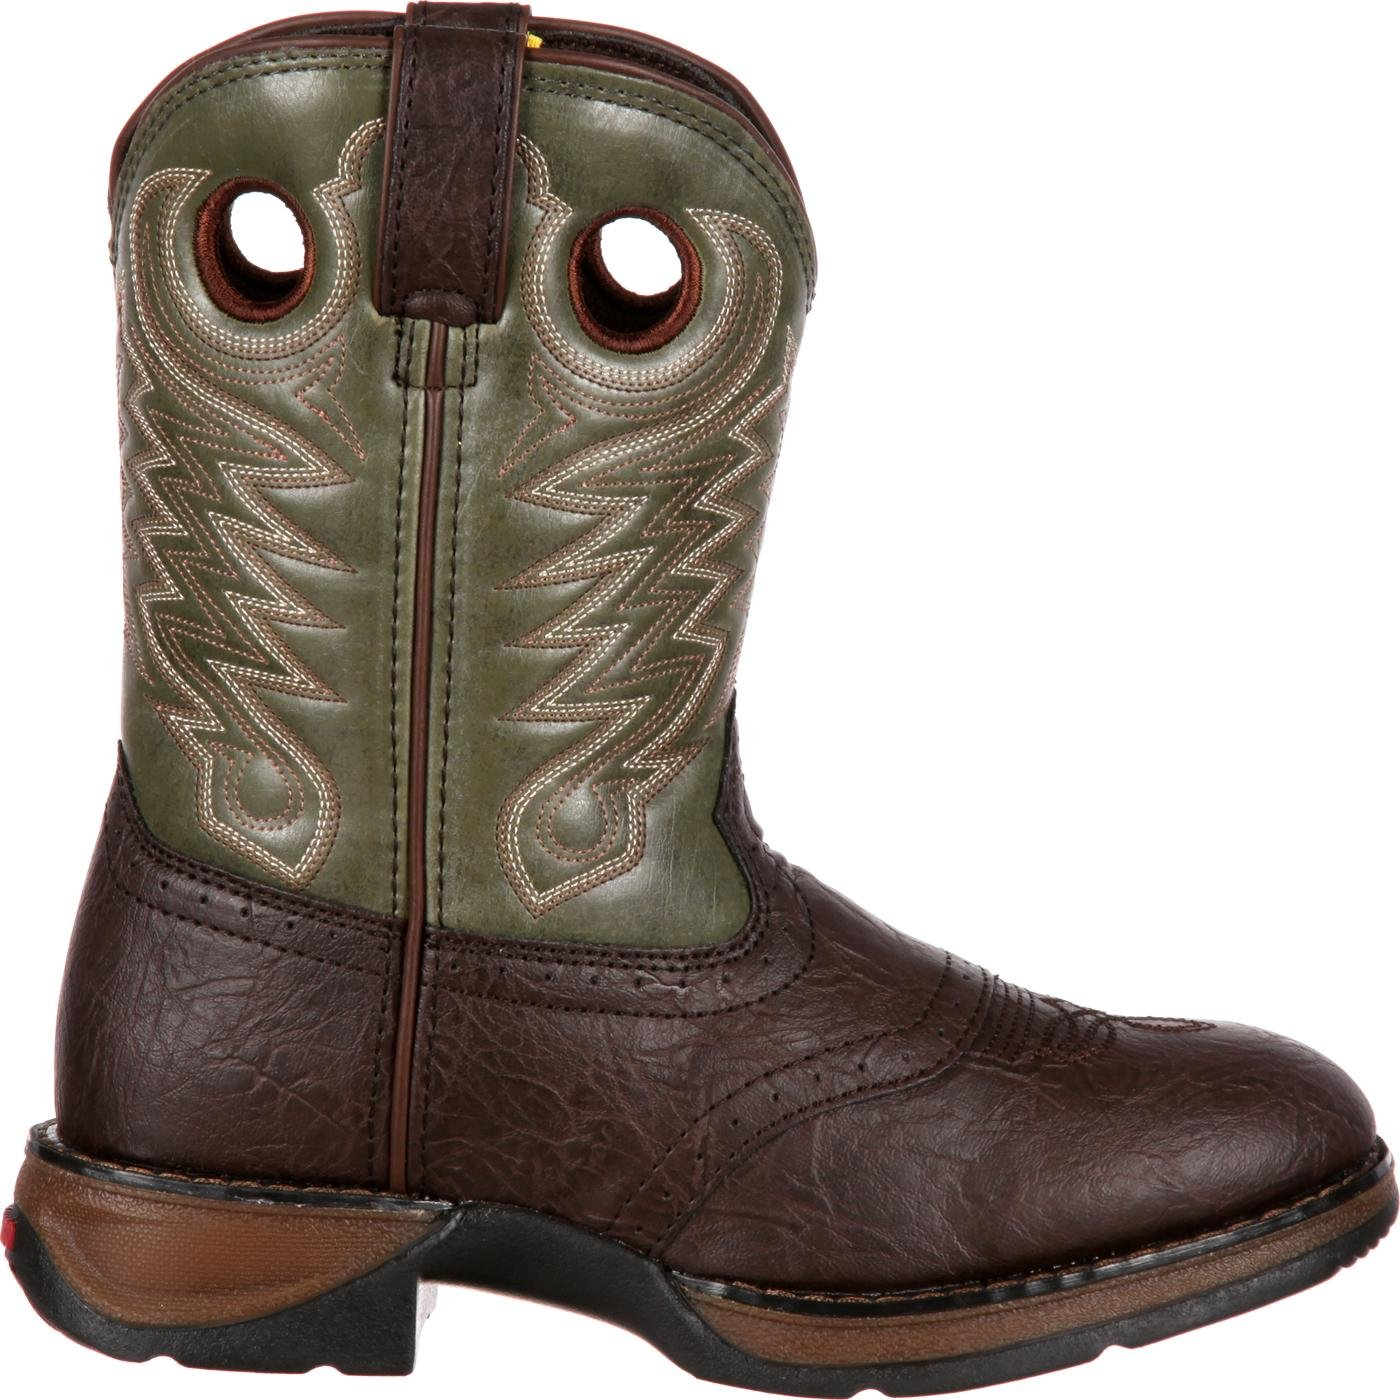 d4545beee7 Durango Kids  Boots - Brown and Green Pull-On Western Boots - Style ...